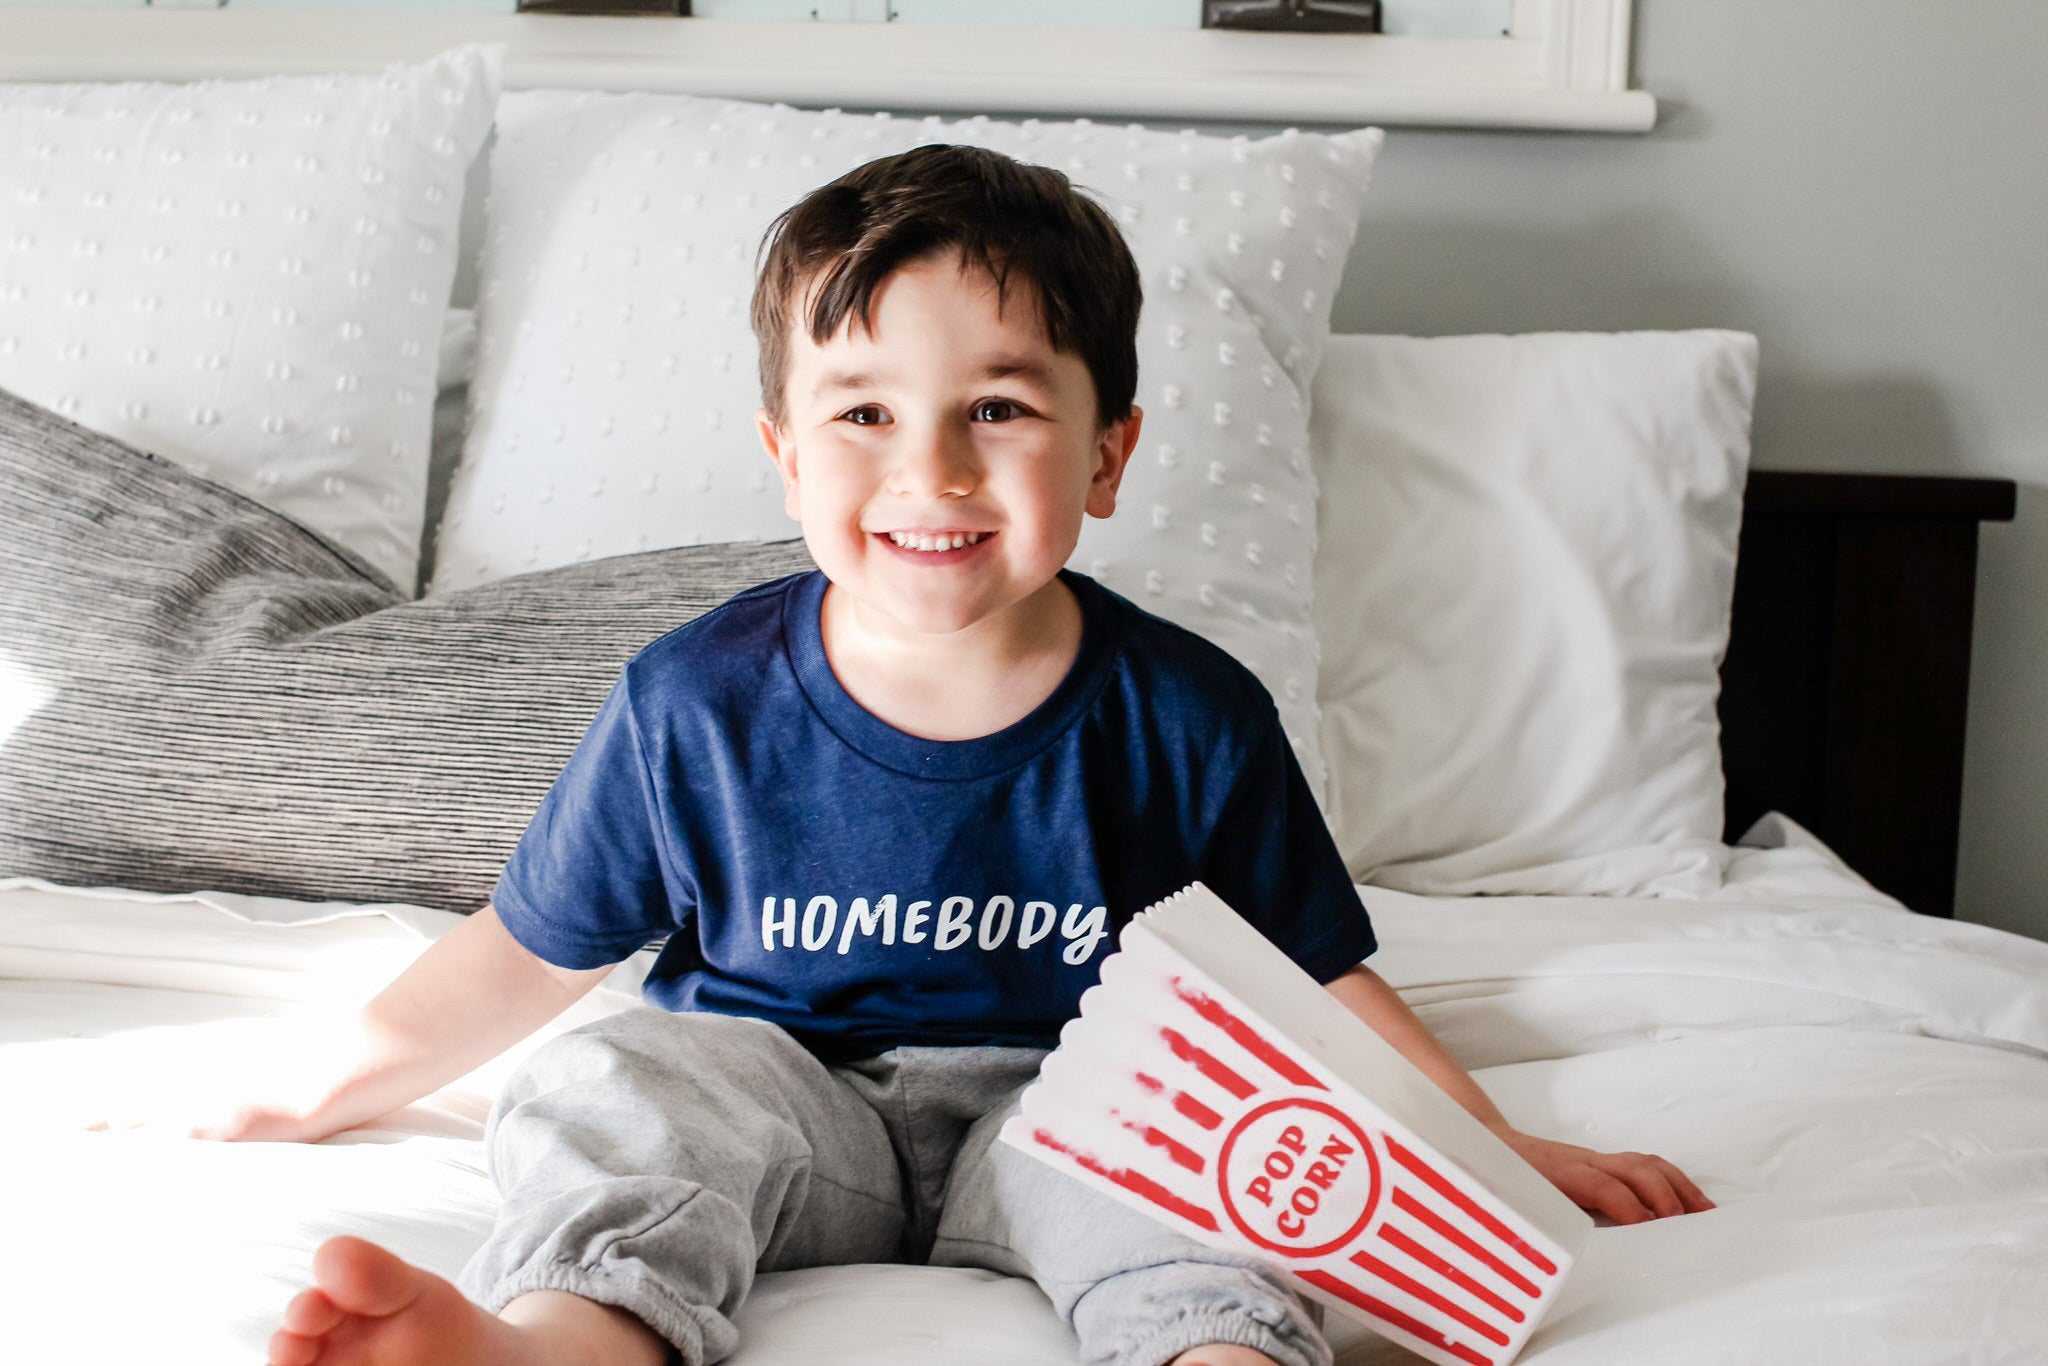 Homebody Kids Tees [ships in 3-5 business days]